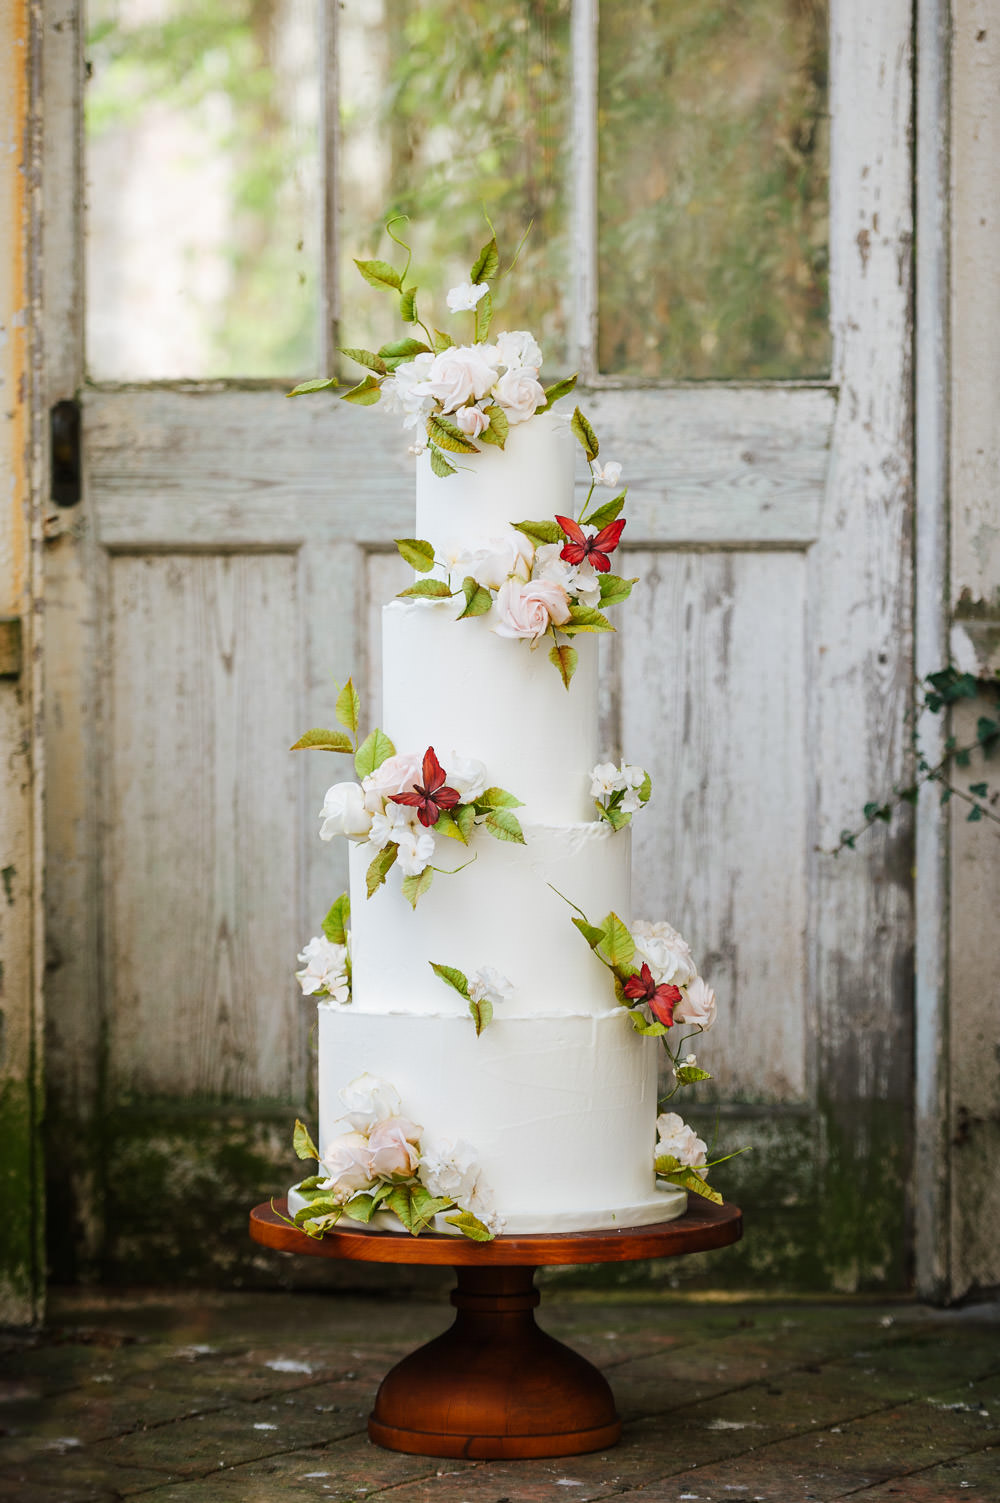 Iced Cake Floral Flowers Cherry Blossom Wedding Ideas Sugarbird Photography